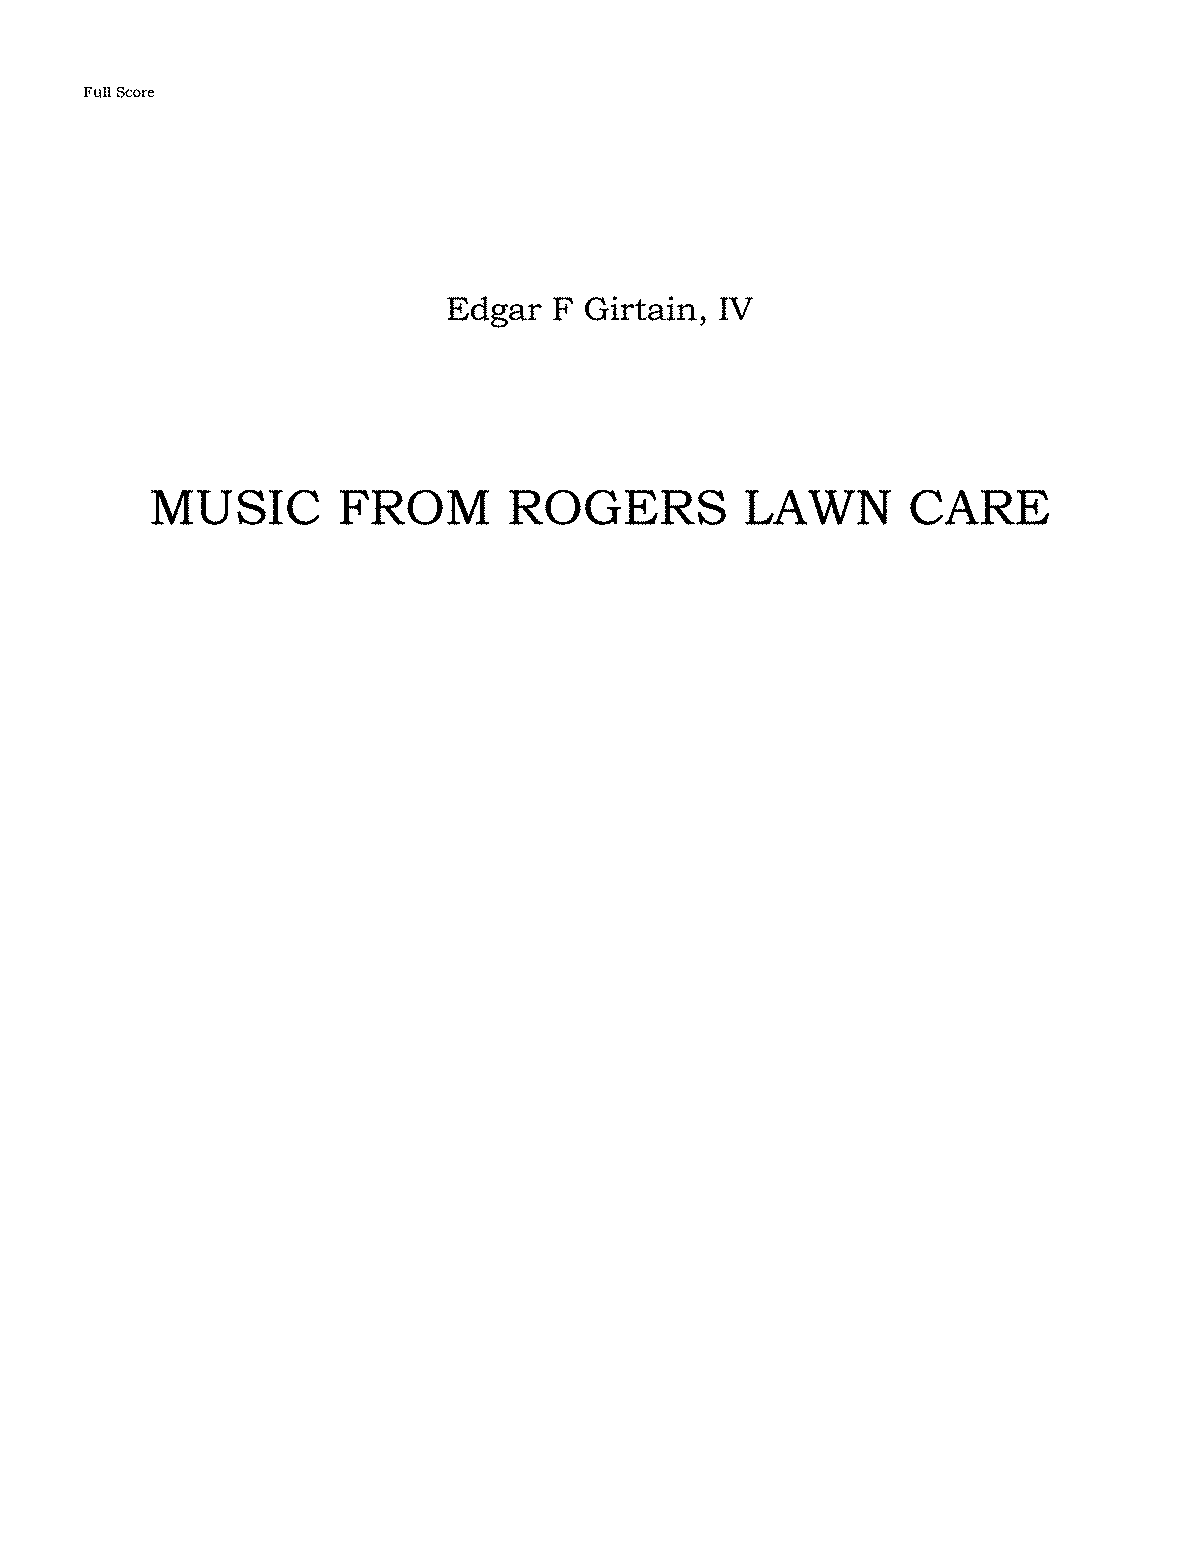 PMLP347940-Music From Rogers Lawn Care Score.pdf